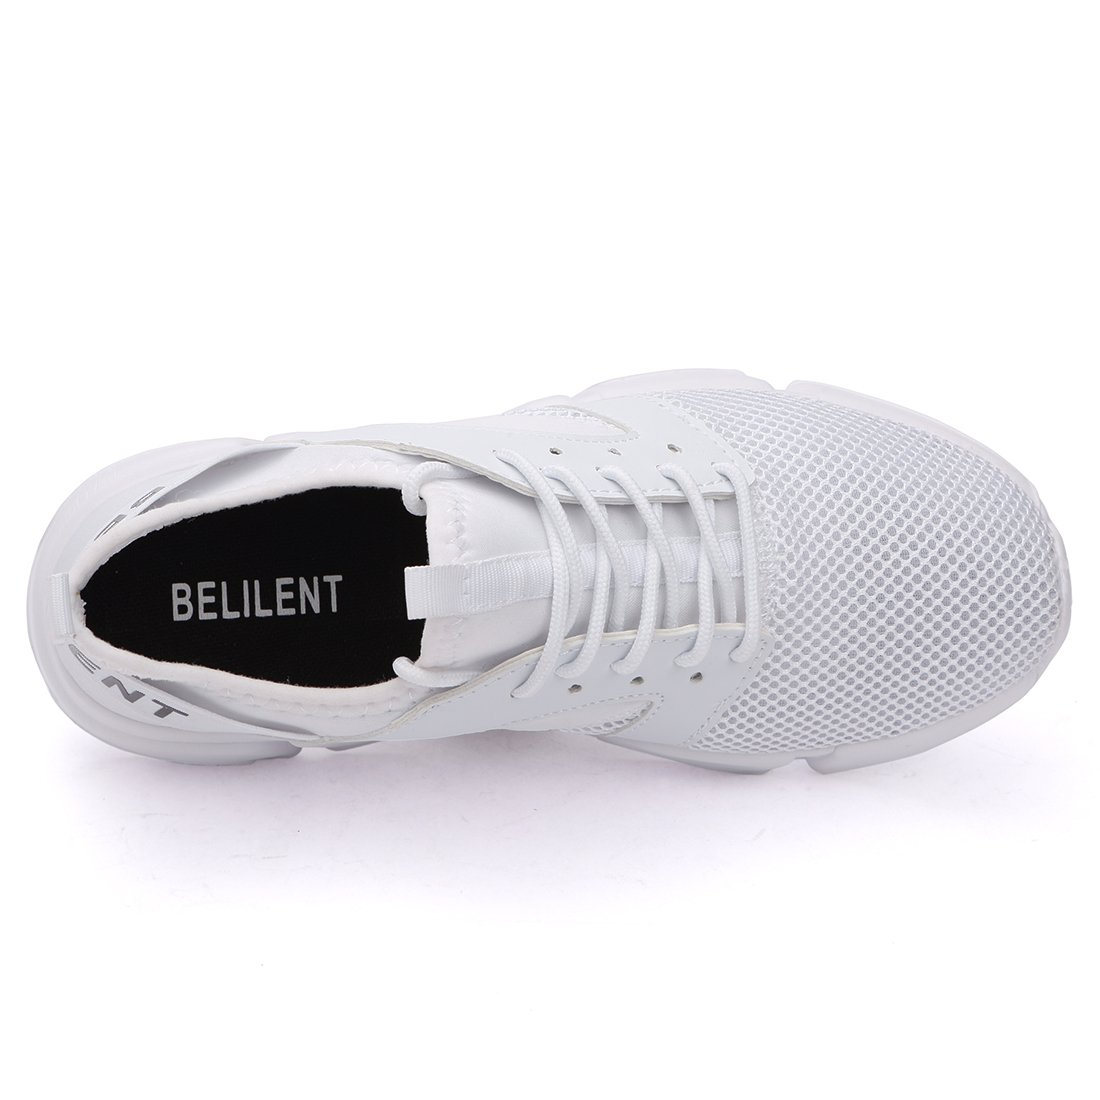 Women's Lightweight Walking Shoes Breathable Mesh Soft Sole for Casual Walk Outdoor Workout Travel Work by Belilent (Image #5)